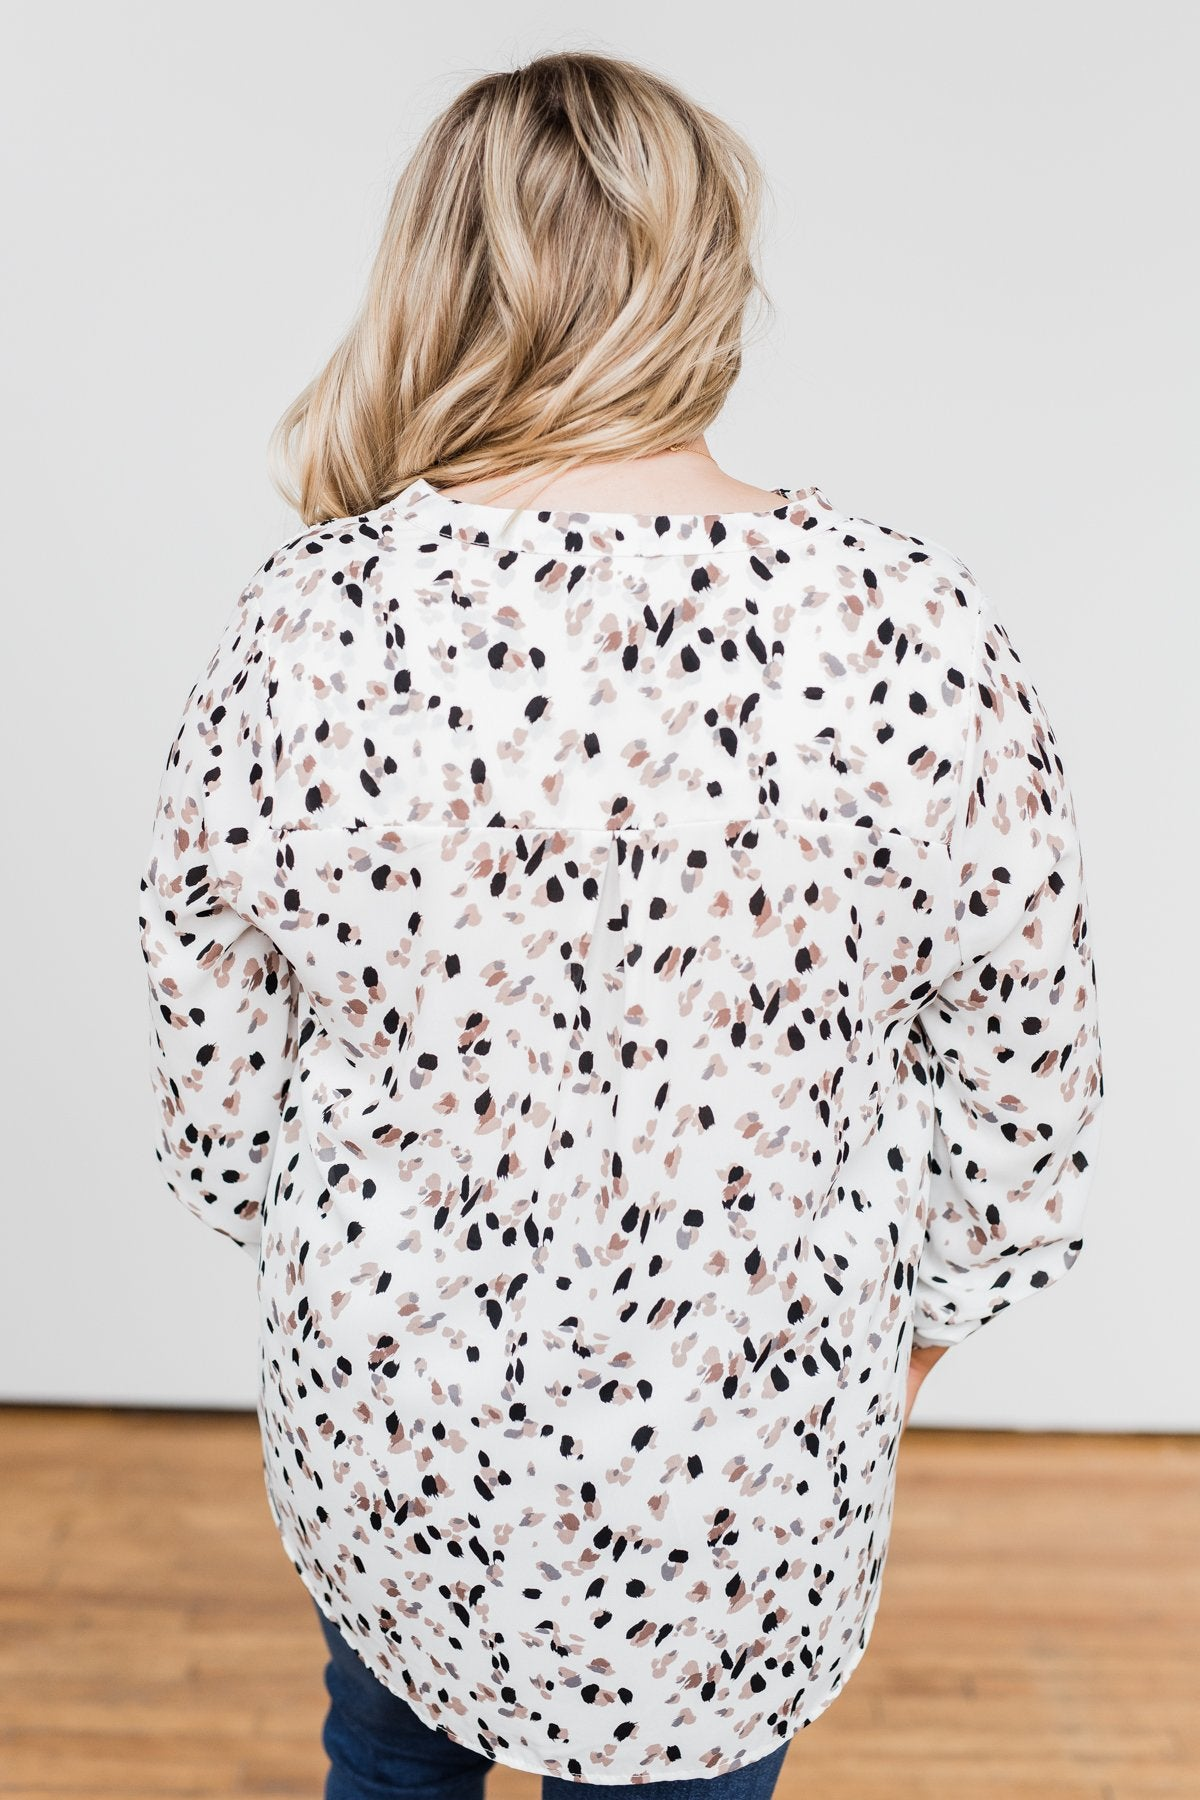 Calling Out To You Printed Blouse- Ivory